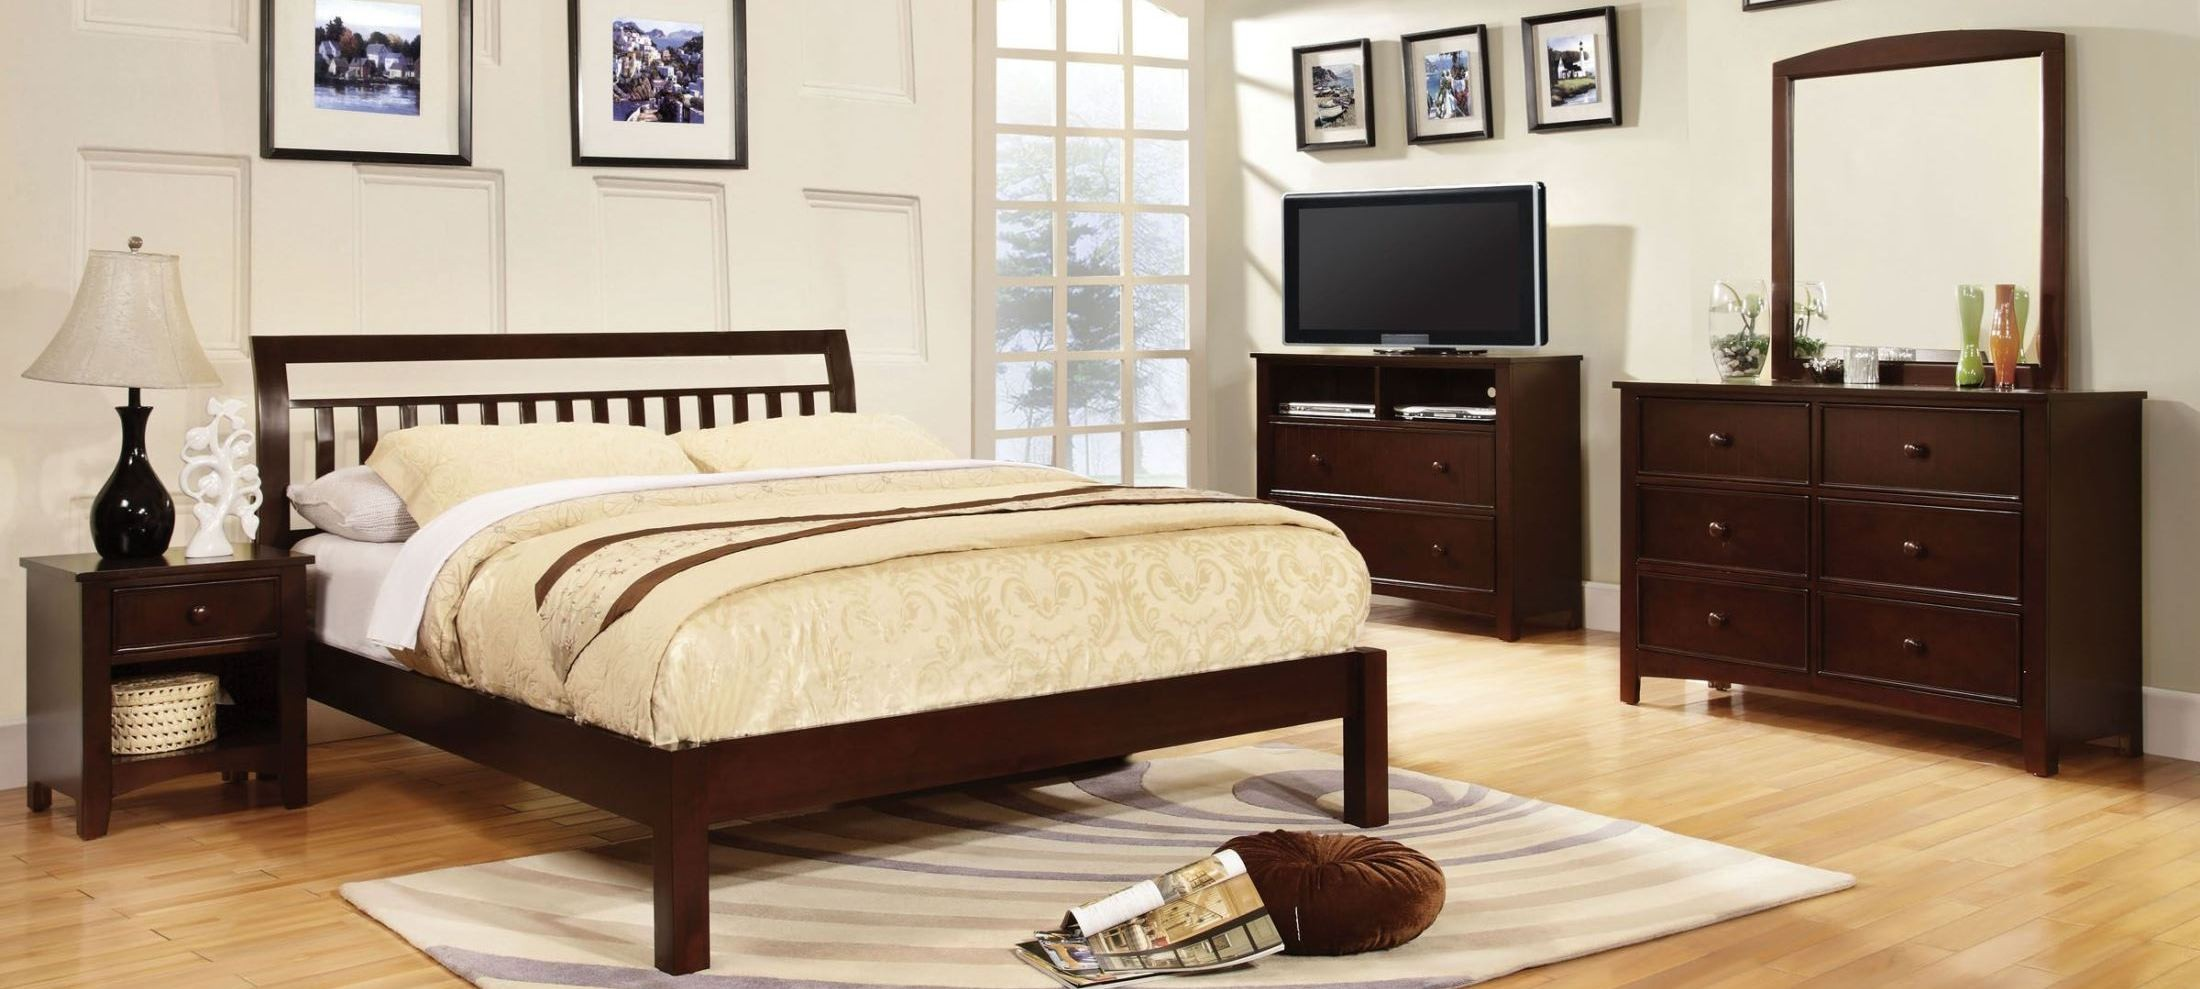 Corry dark walnut youth platform bedroom set from for American black walnut bedroom furniture